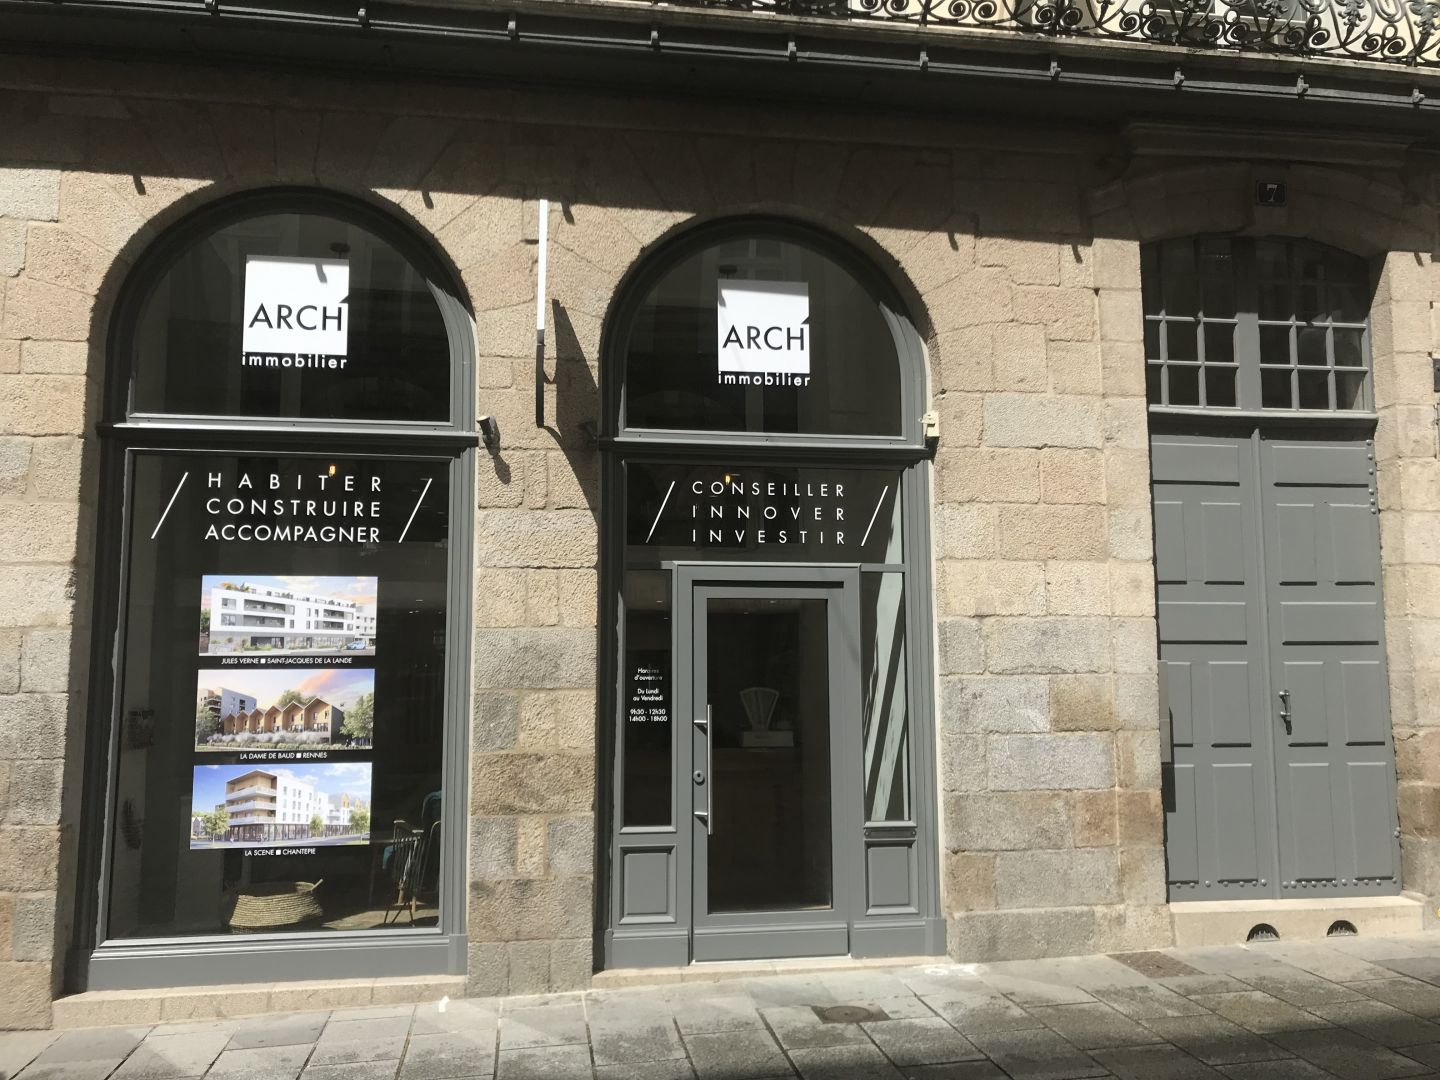 Agence archimmobilier